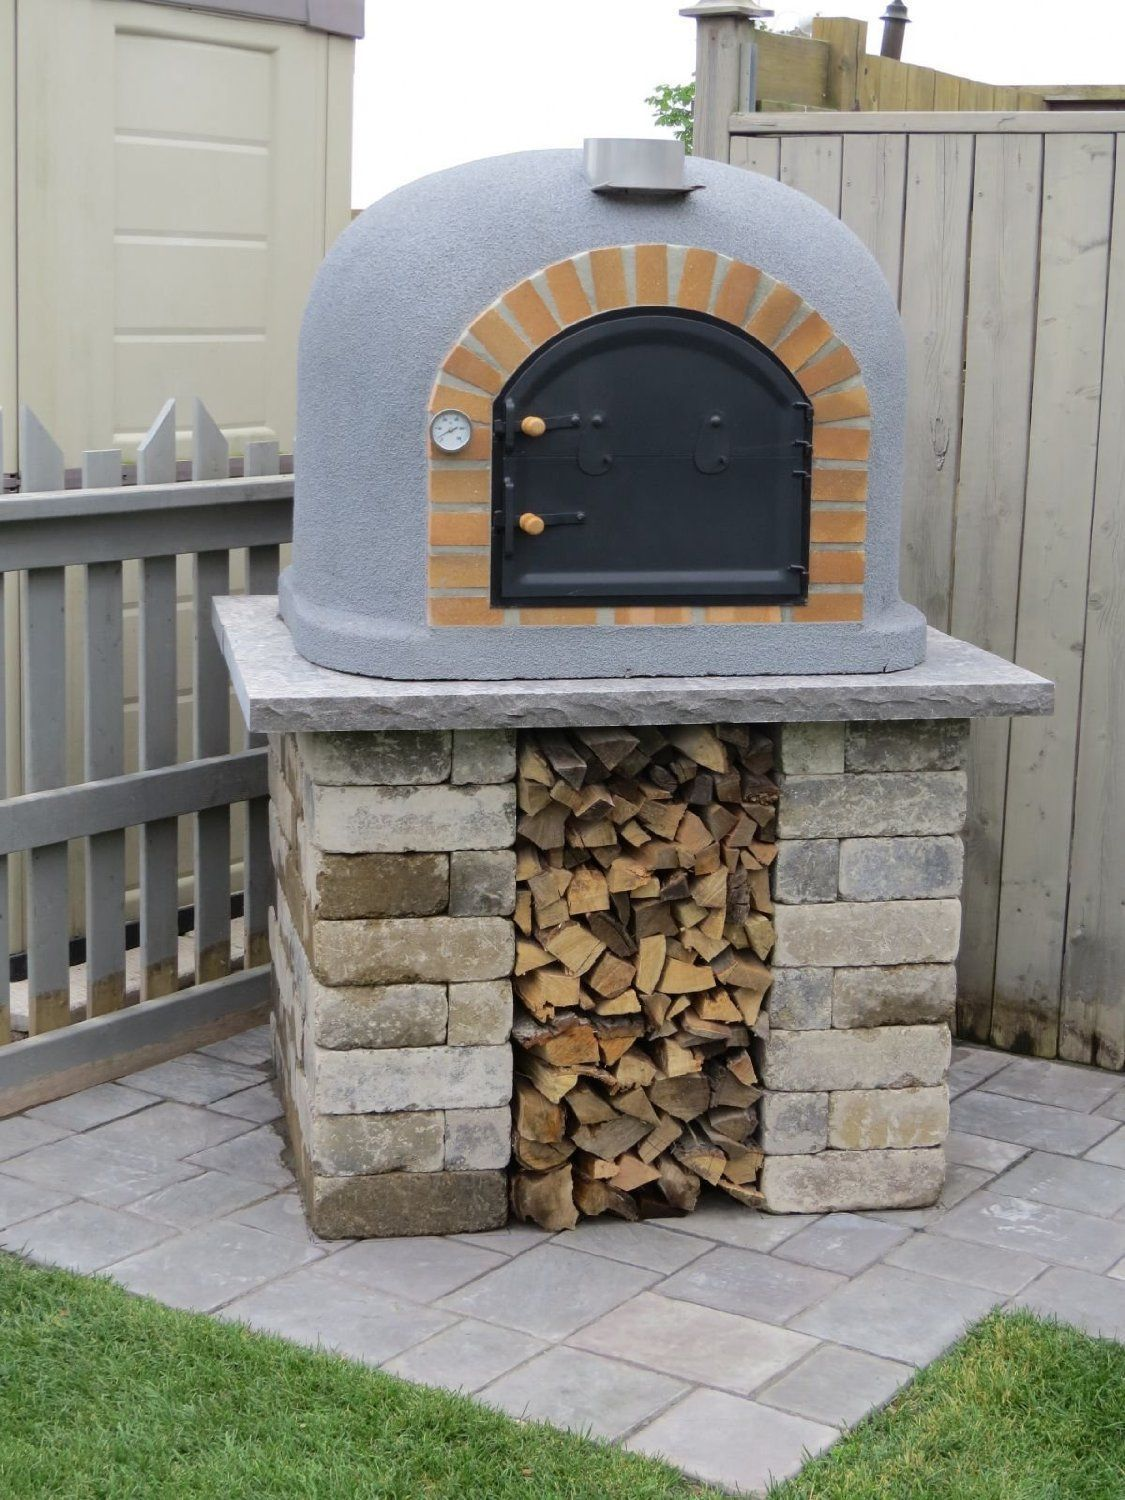 Outdoor Pizza Oven Wood Fired Insulated with Brick Arch  Chimney Outdoor Pizza Oven Wood Fired Insulated with Brick Arch  Chimney